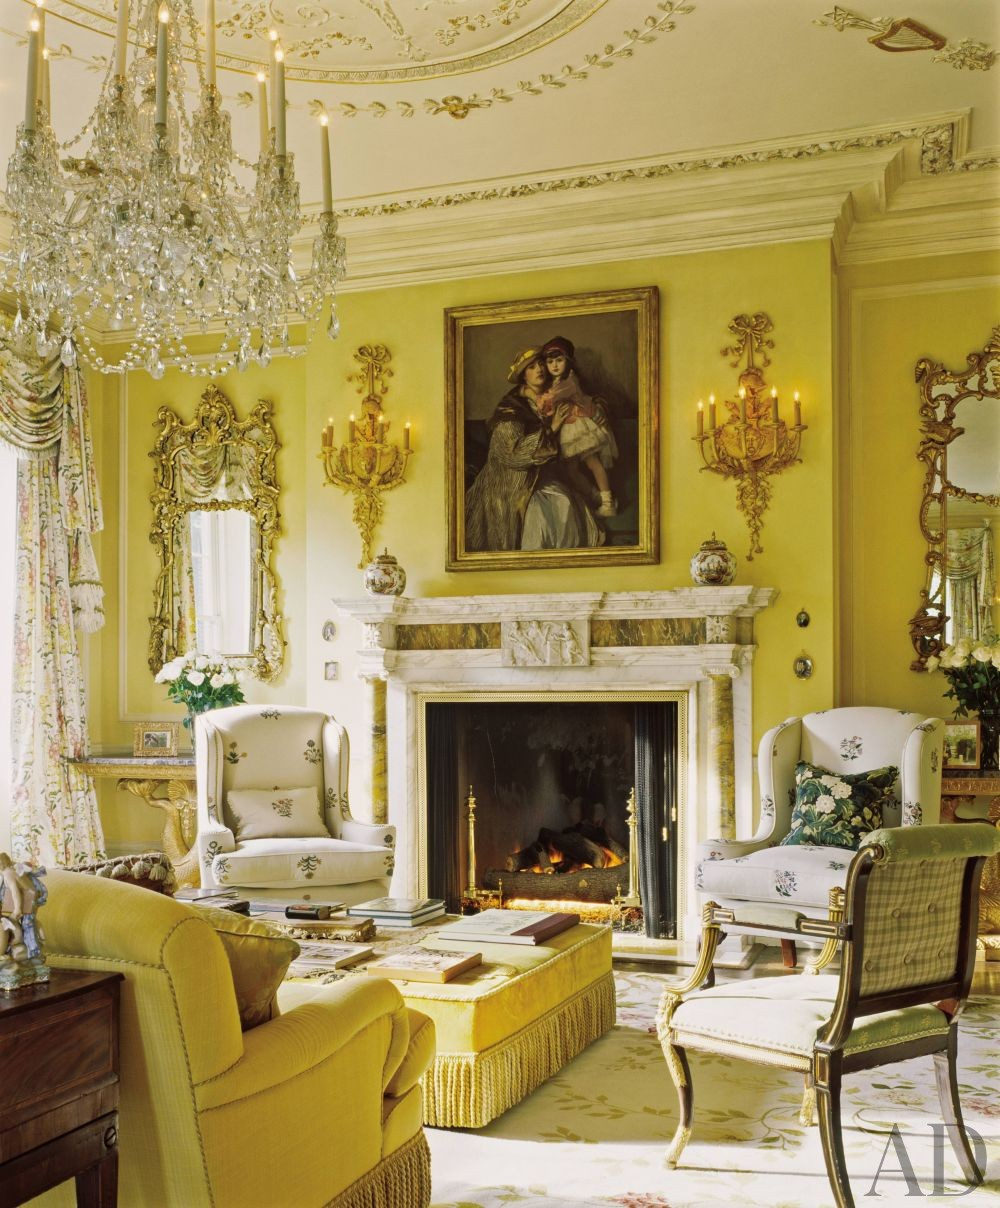 33 Traditional Living Room Design: Traditional Living Room By Tiggy Butler By Architectural